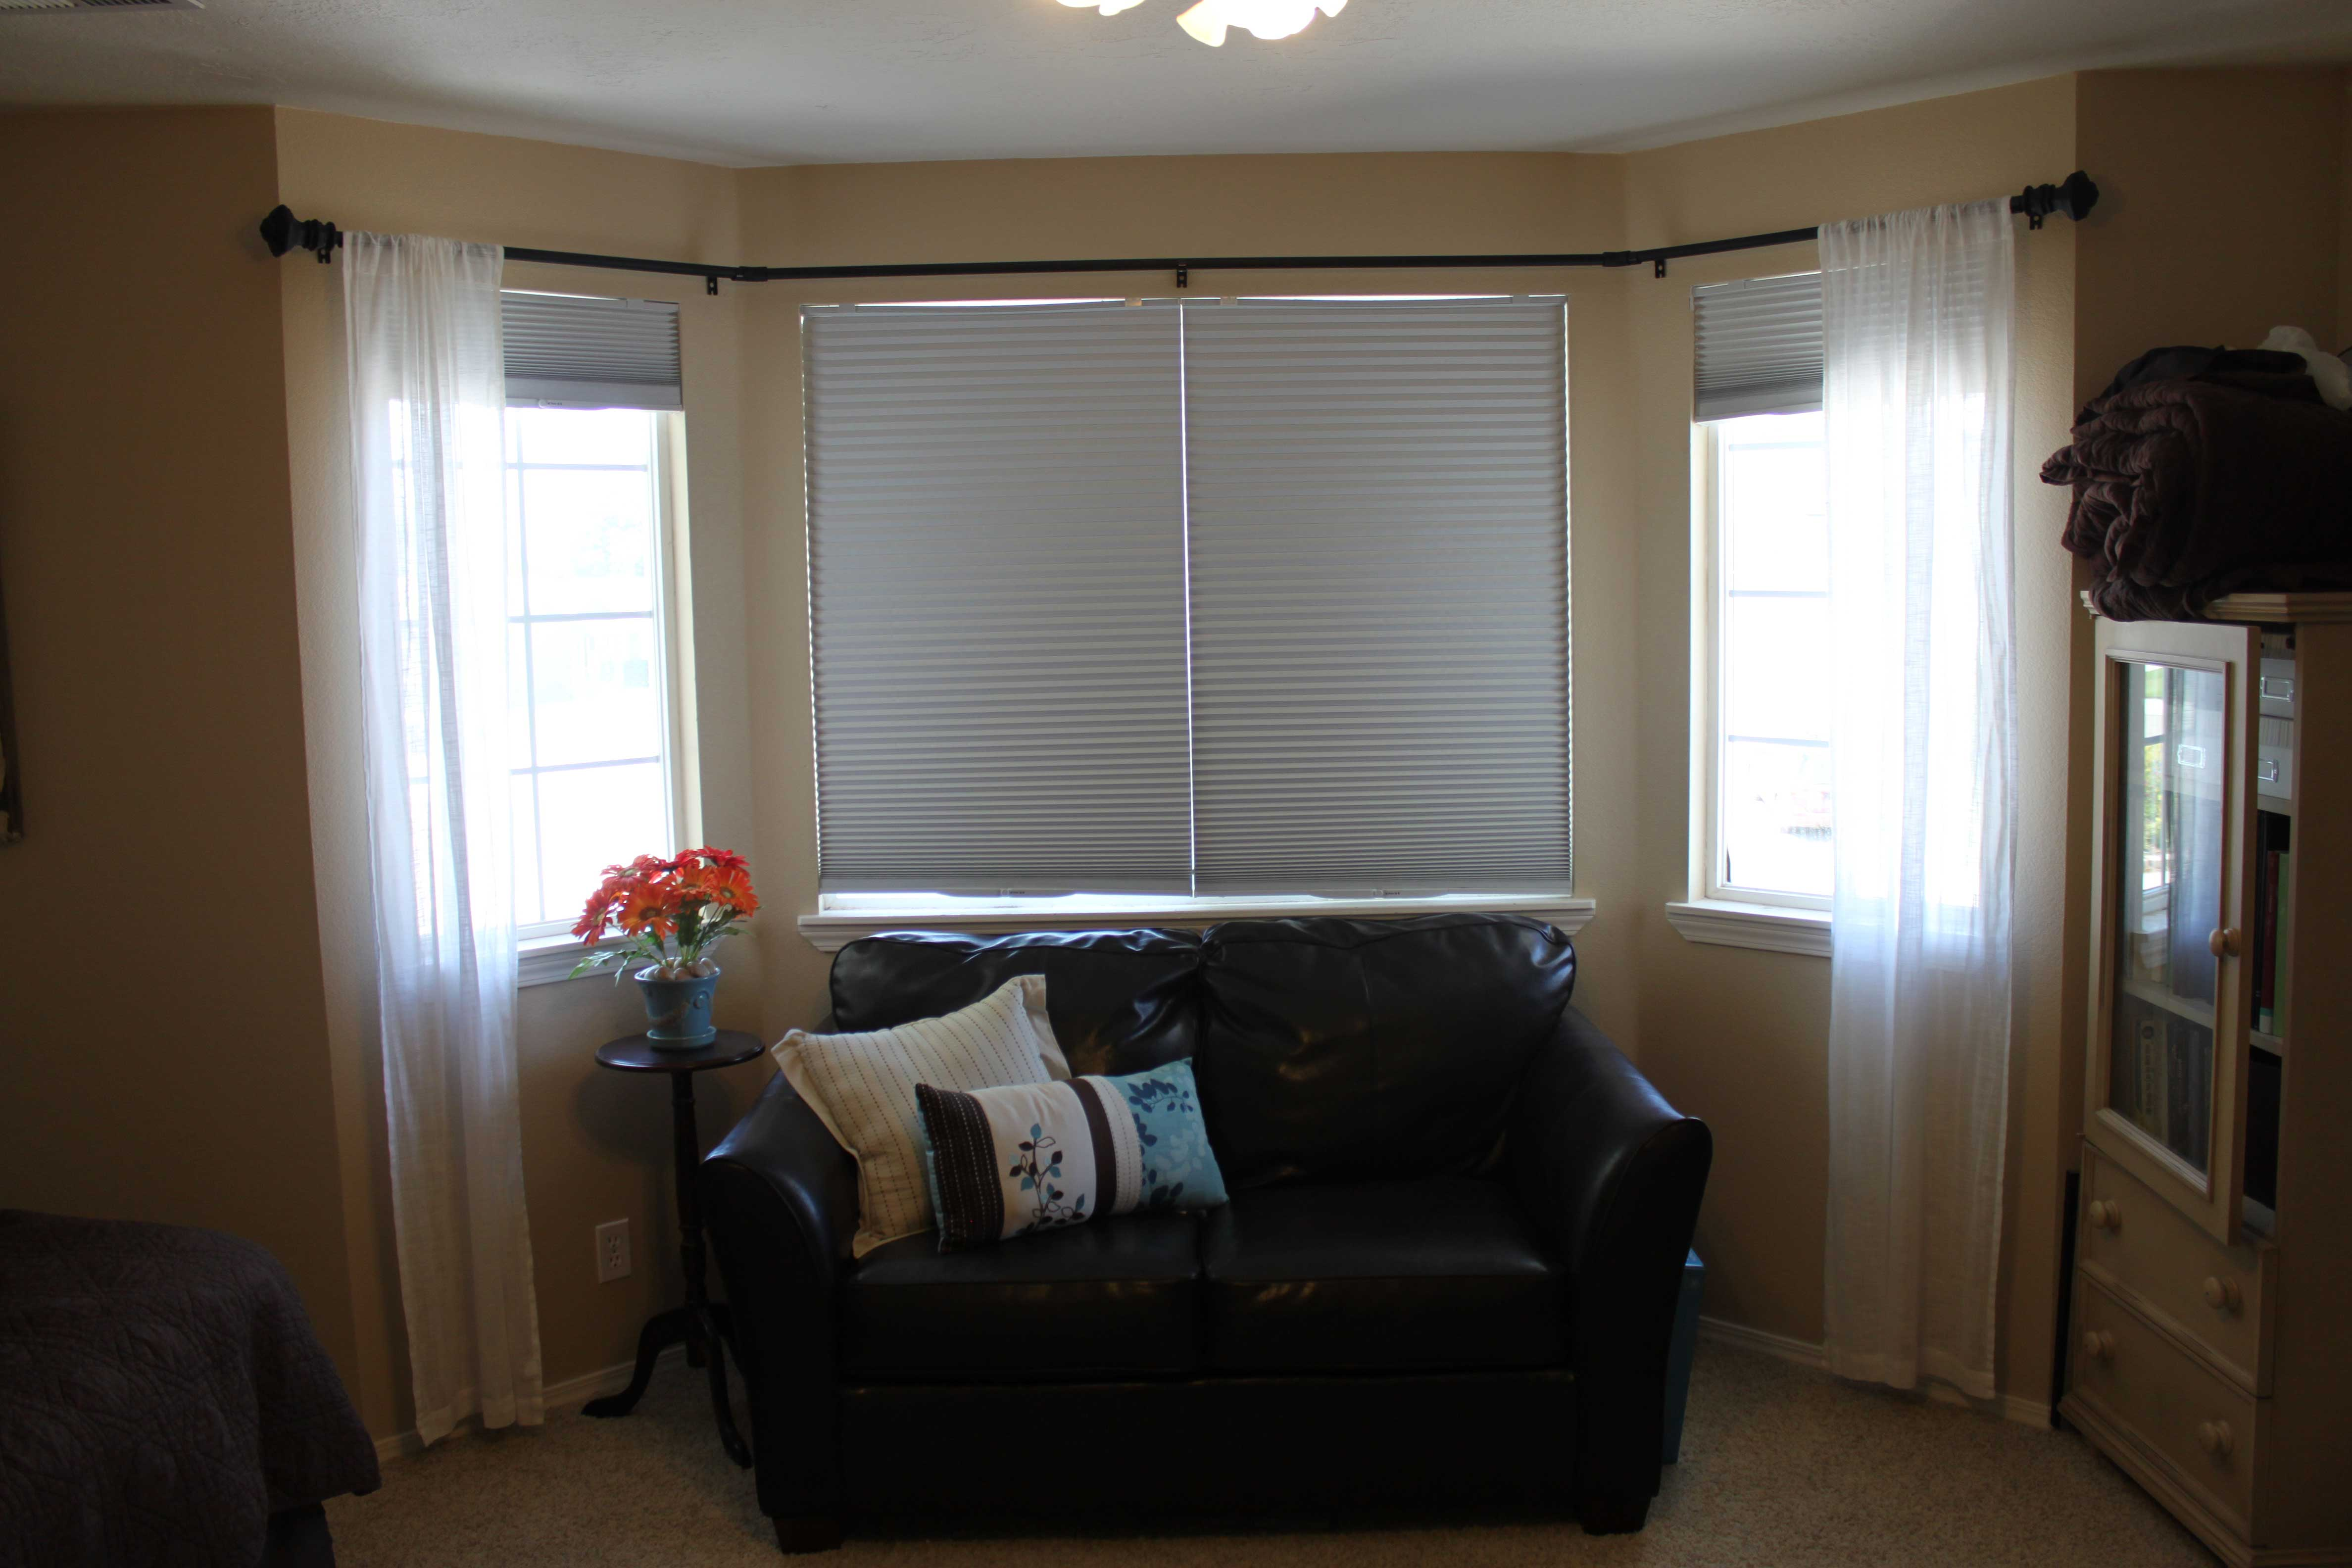 Bay window curtains for living room - Diy Bay Window Curtain Rod Pinching Your Pennies